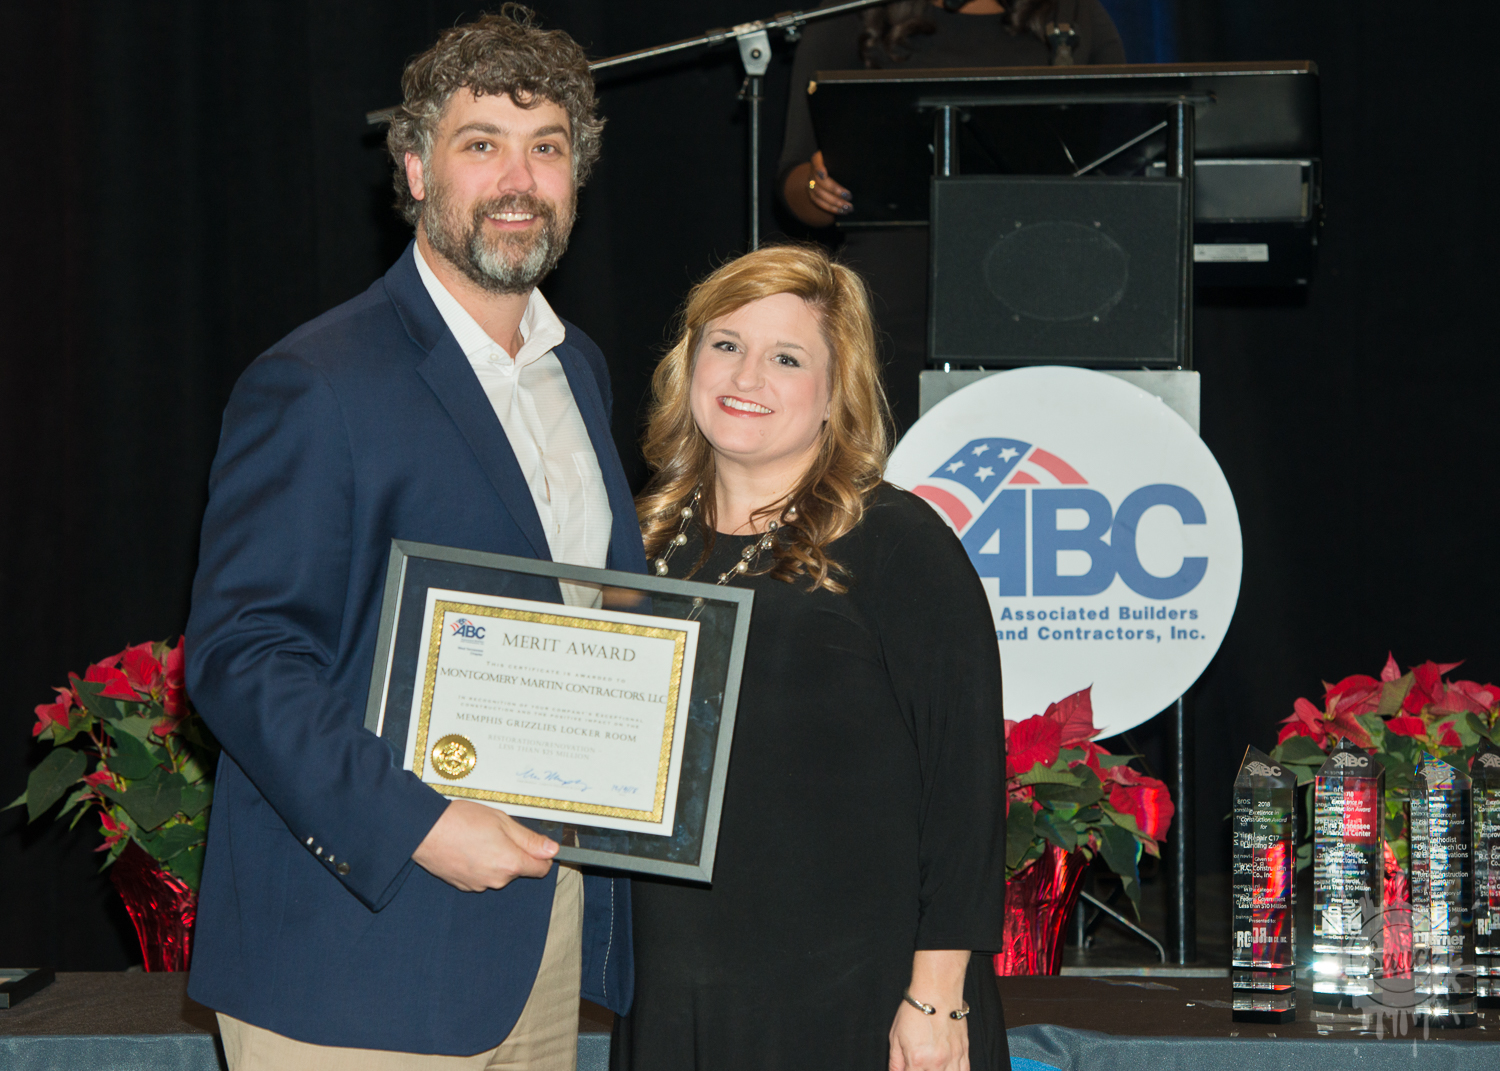 ABC Excellence In Construction Awards 2018-4077.jpg